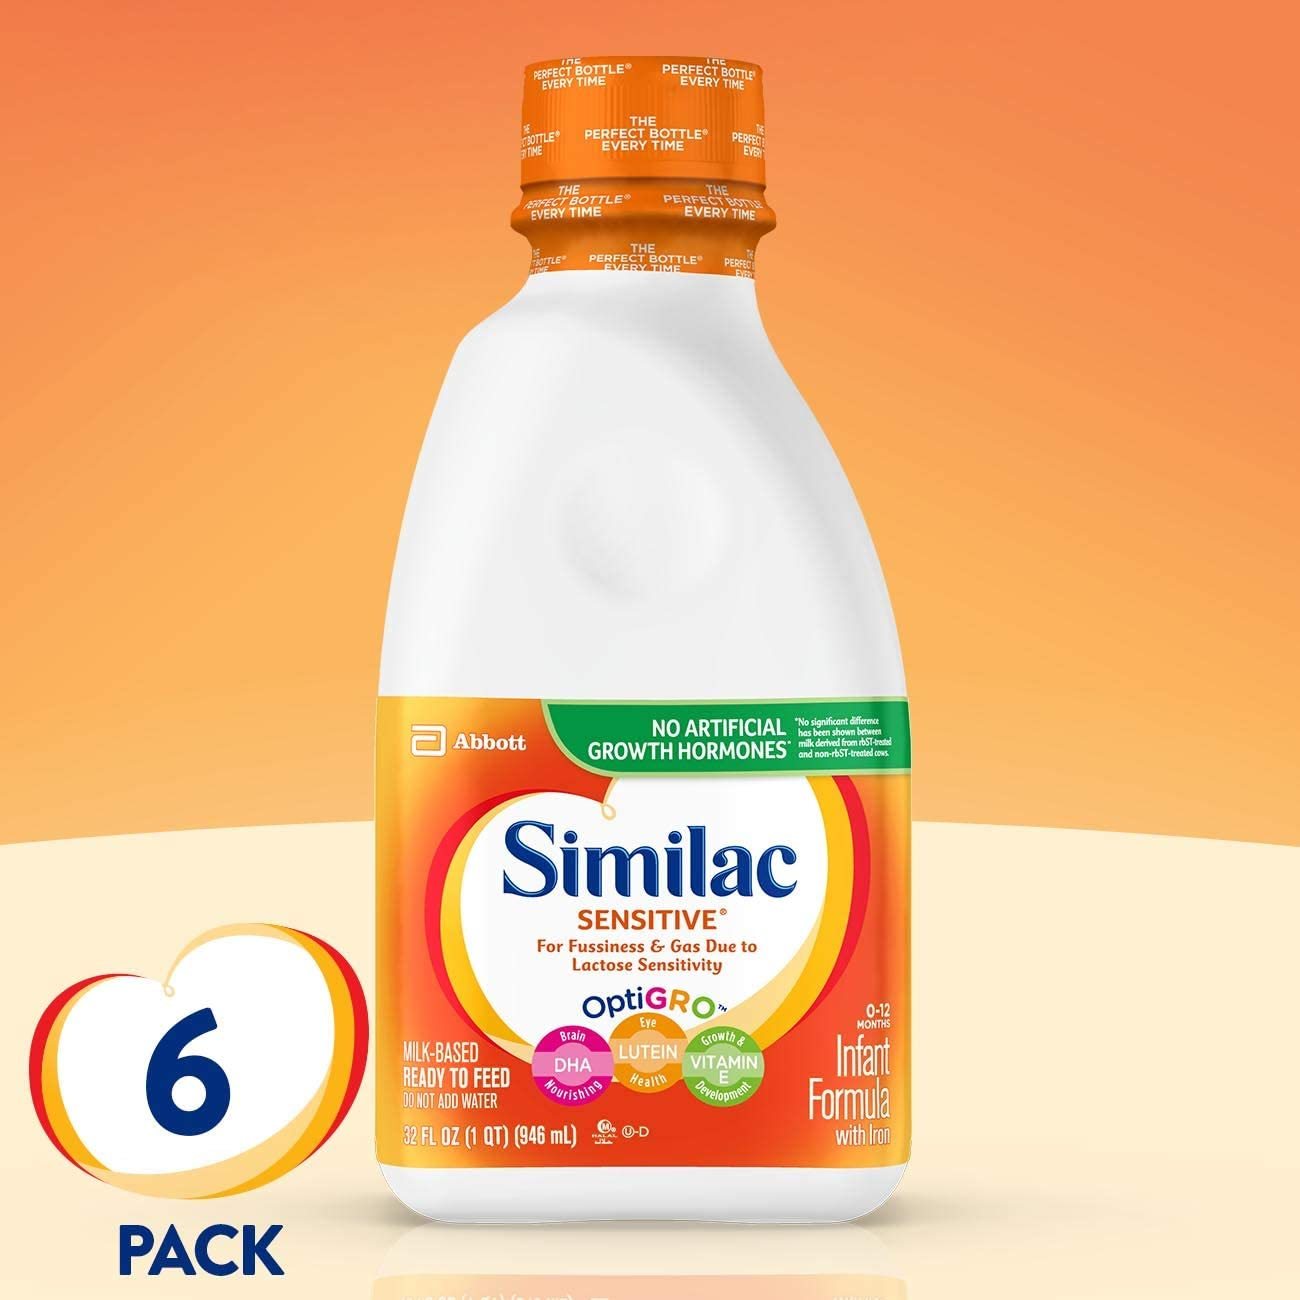 B000ARTNRE Similac Sensitive Infant Formula with Iron, Ready to Feed, 1 qt (Pack of 6) (Pack May Vary) 61YtFC2m8YL